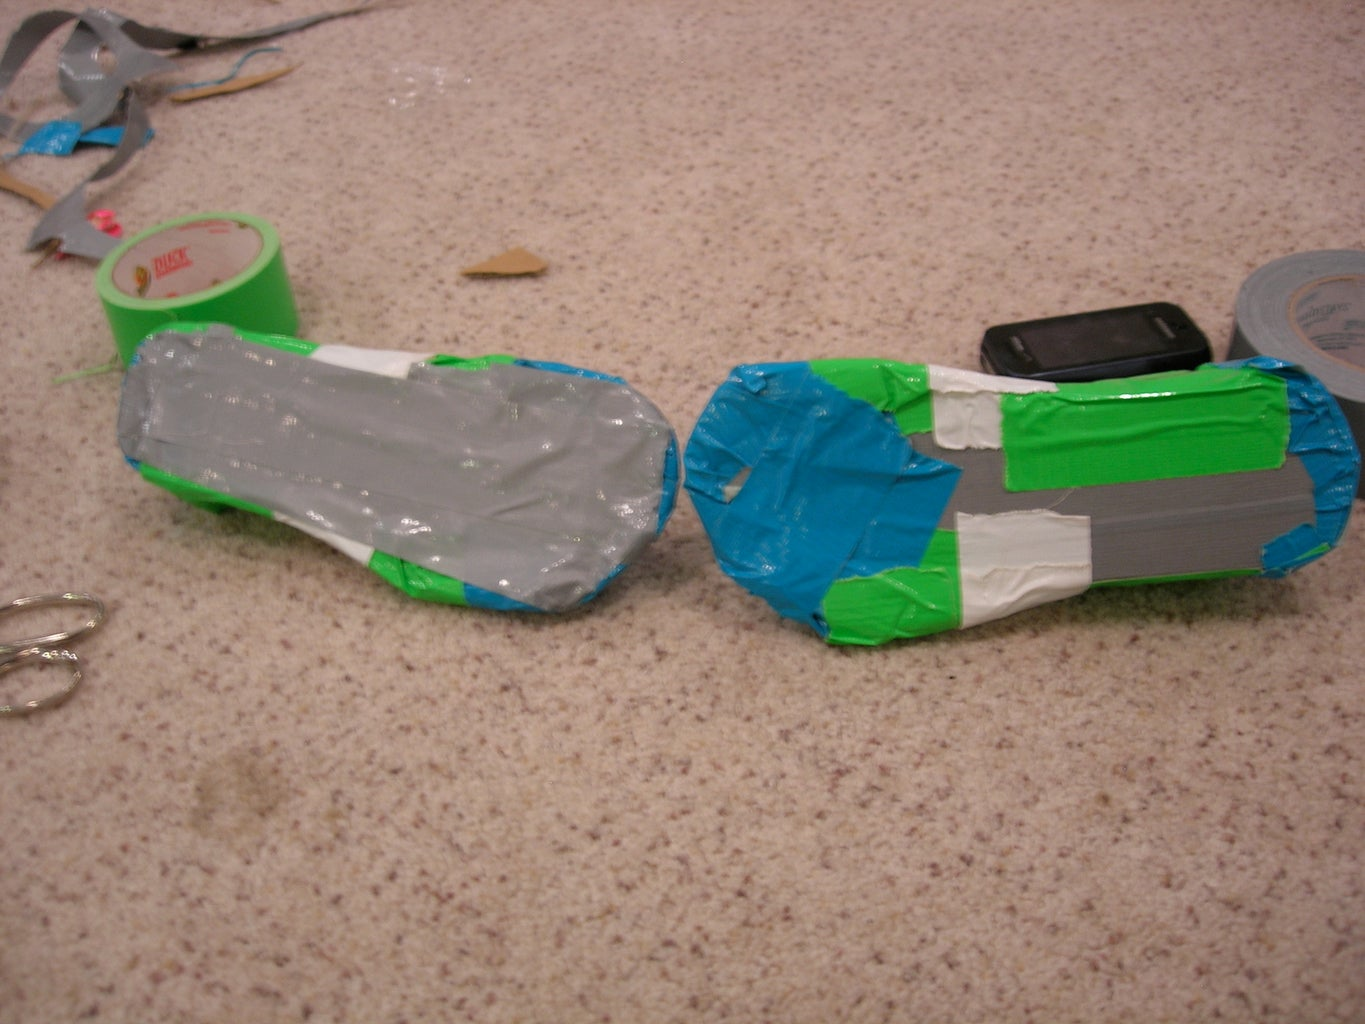 Put More Duct Tape on the Sole